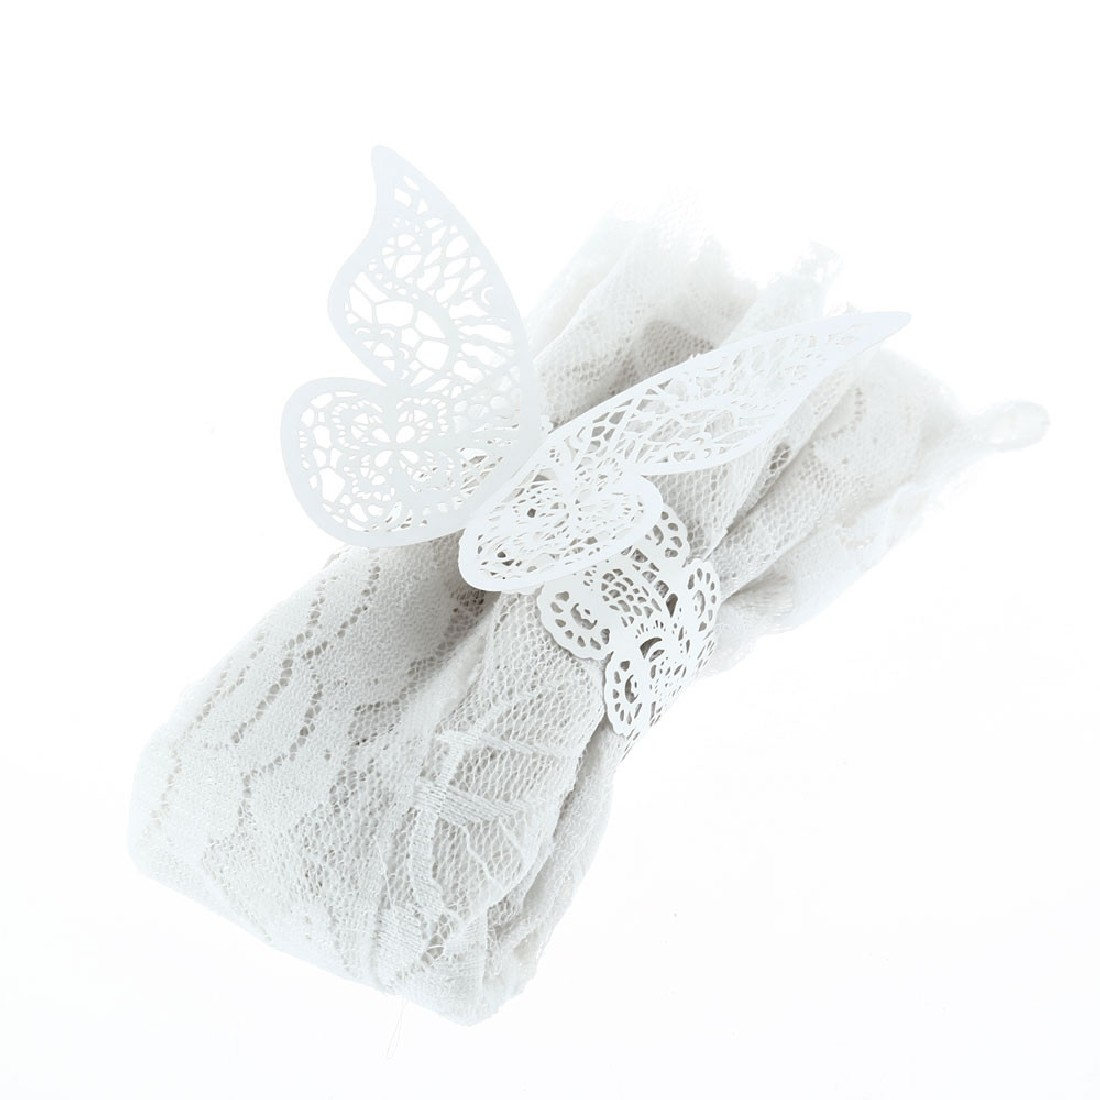 12 pcs lot pearlescent paper butterfly napkin ring wedding party serviette table decoration. Black Bedroom Furniture Sets. Home Design Ideas